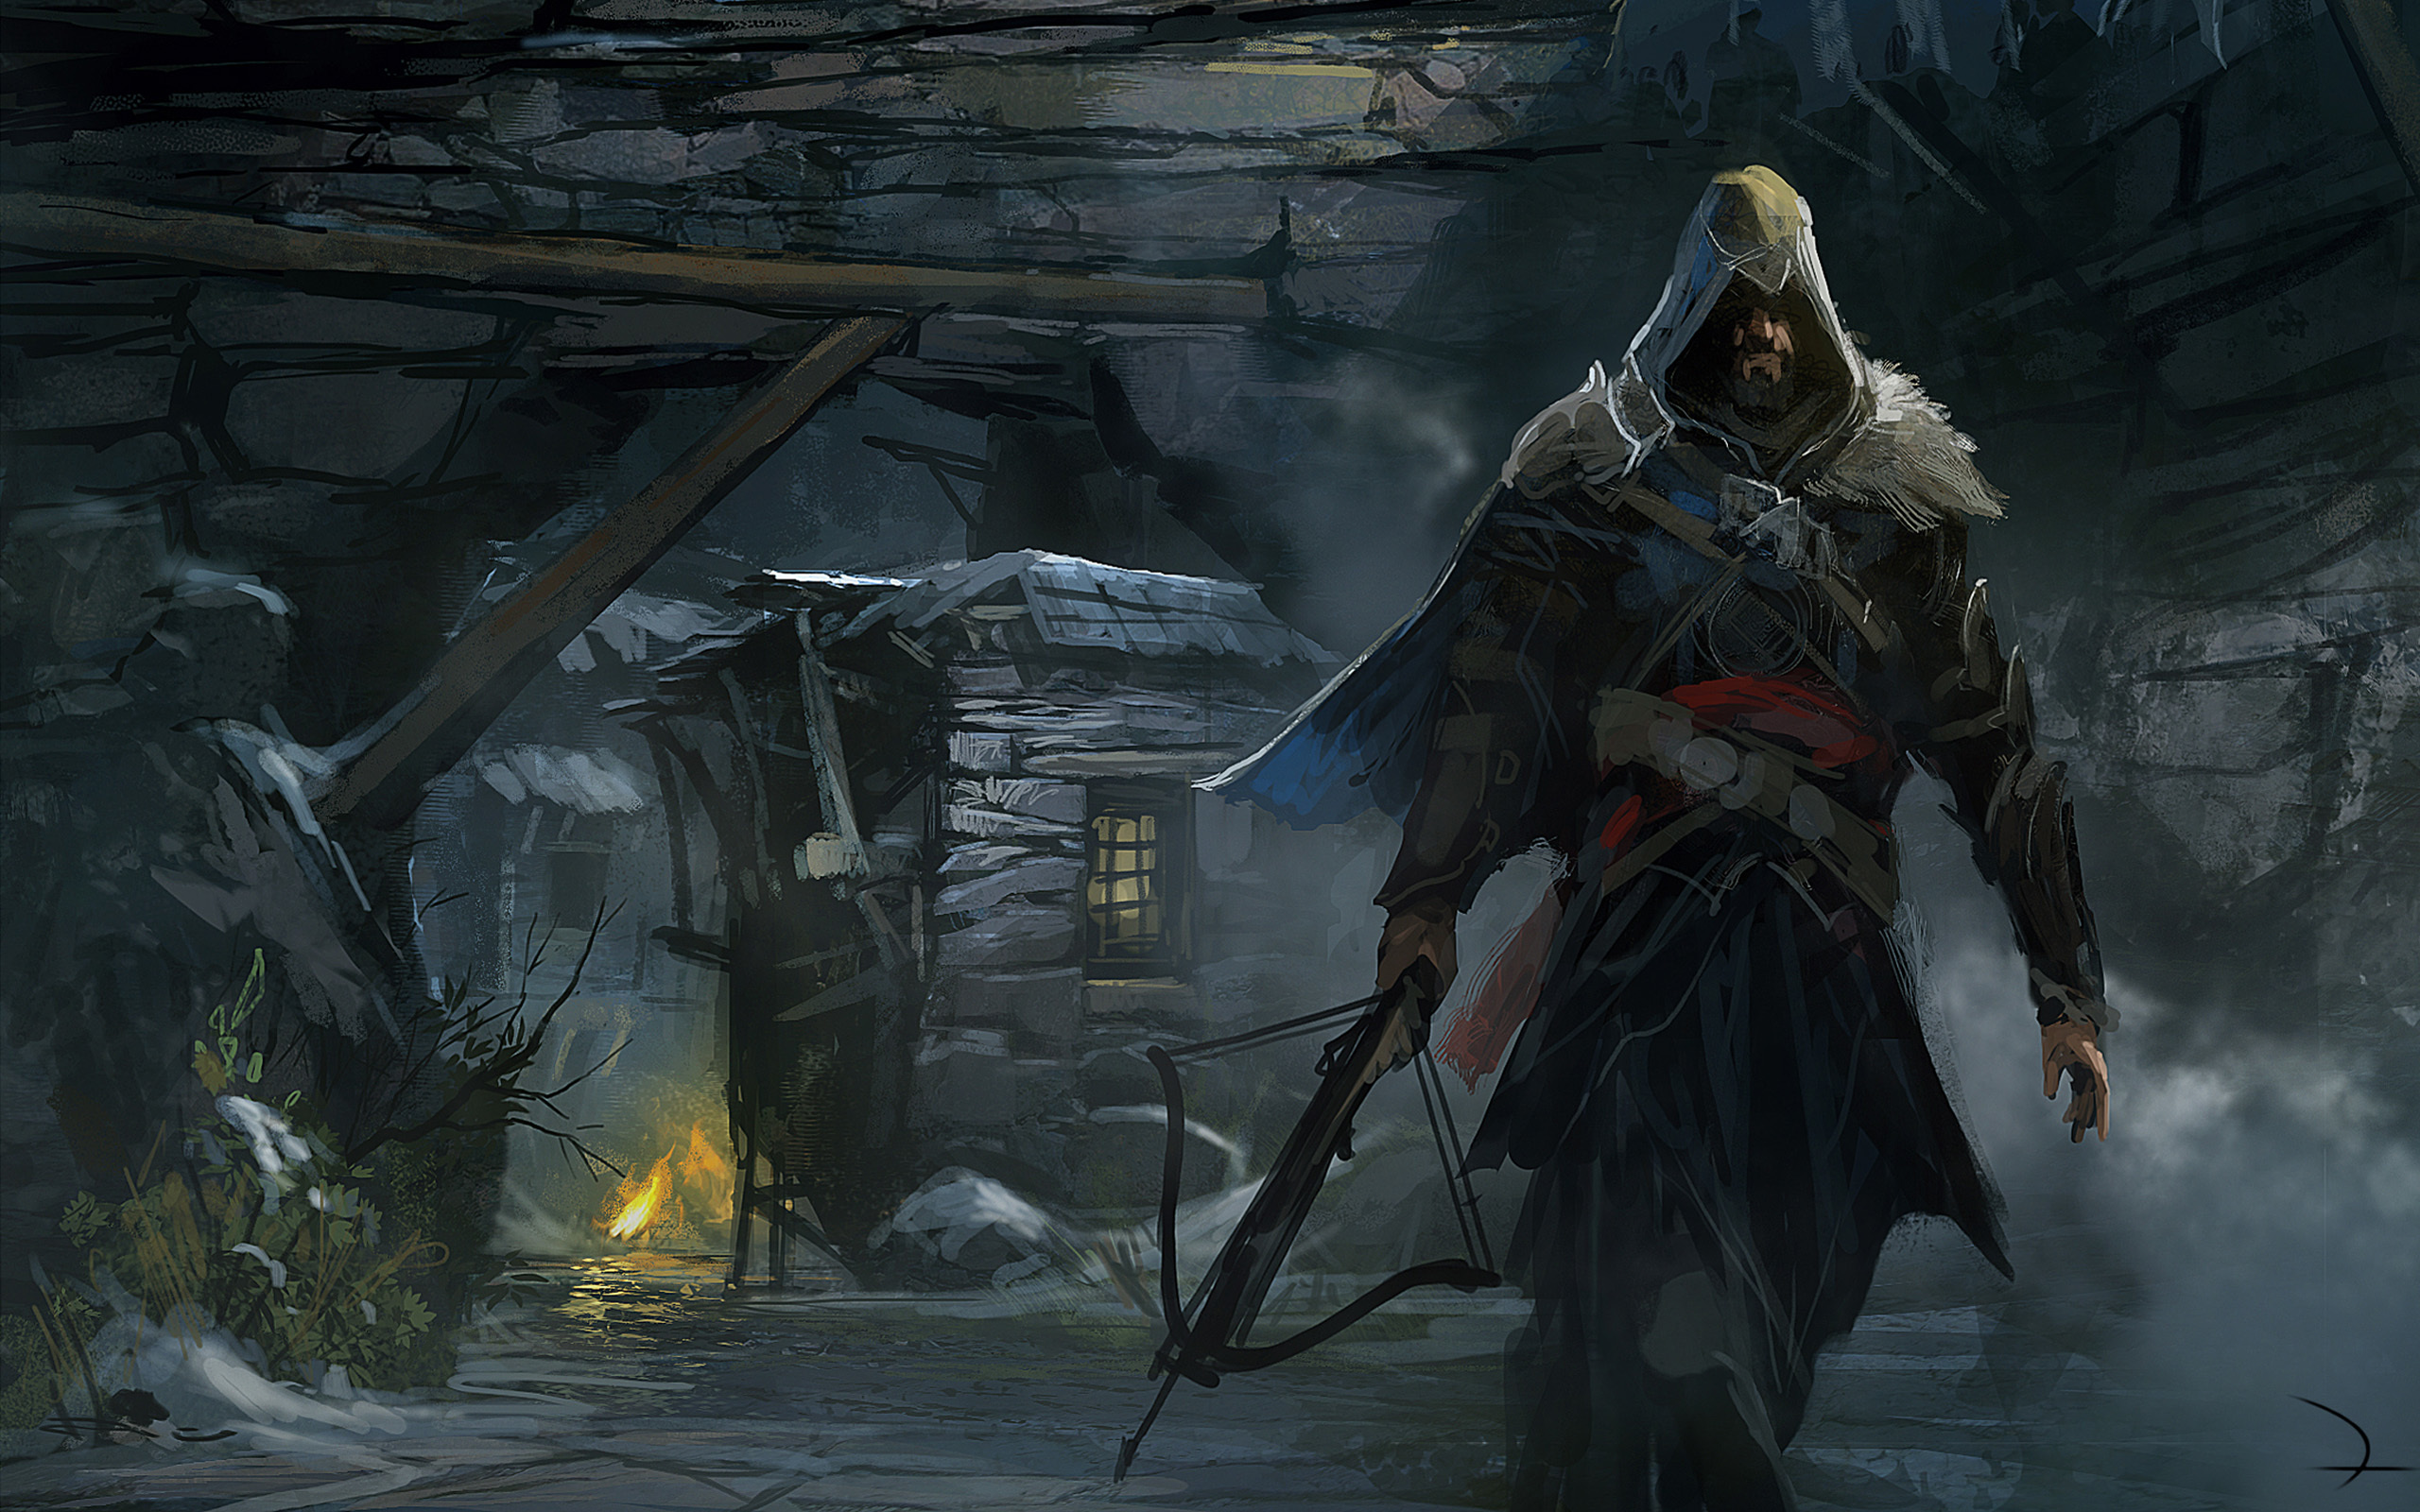 Ezio assassins creed revelations HD Wallpaper